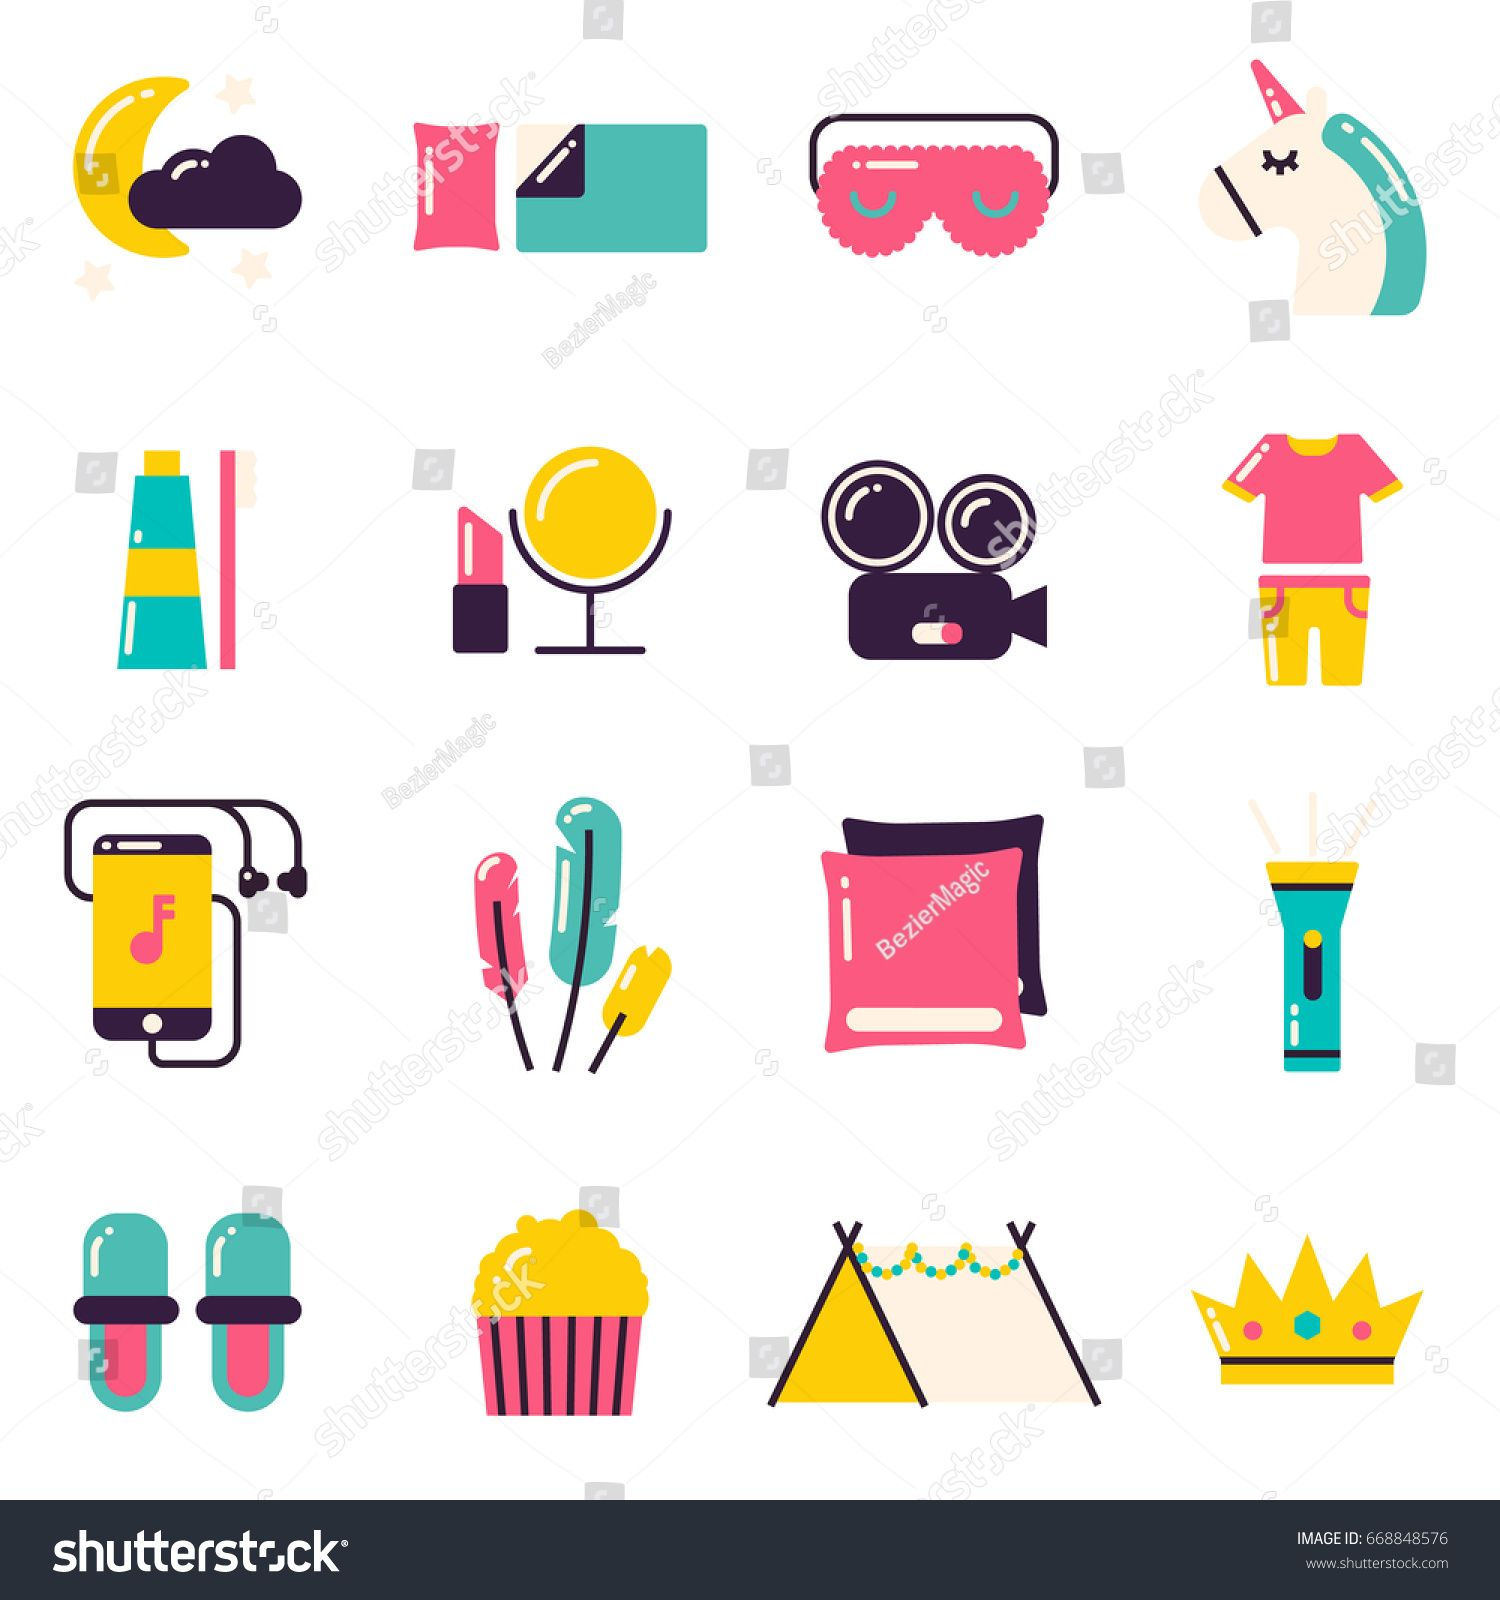 Slumber Party Icons. Pajama party or sleepover symbols and